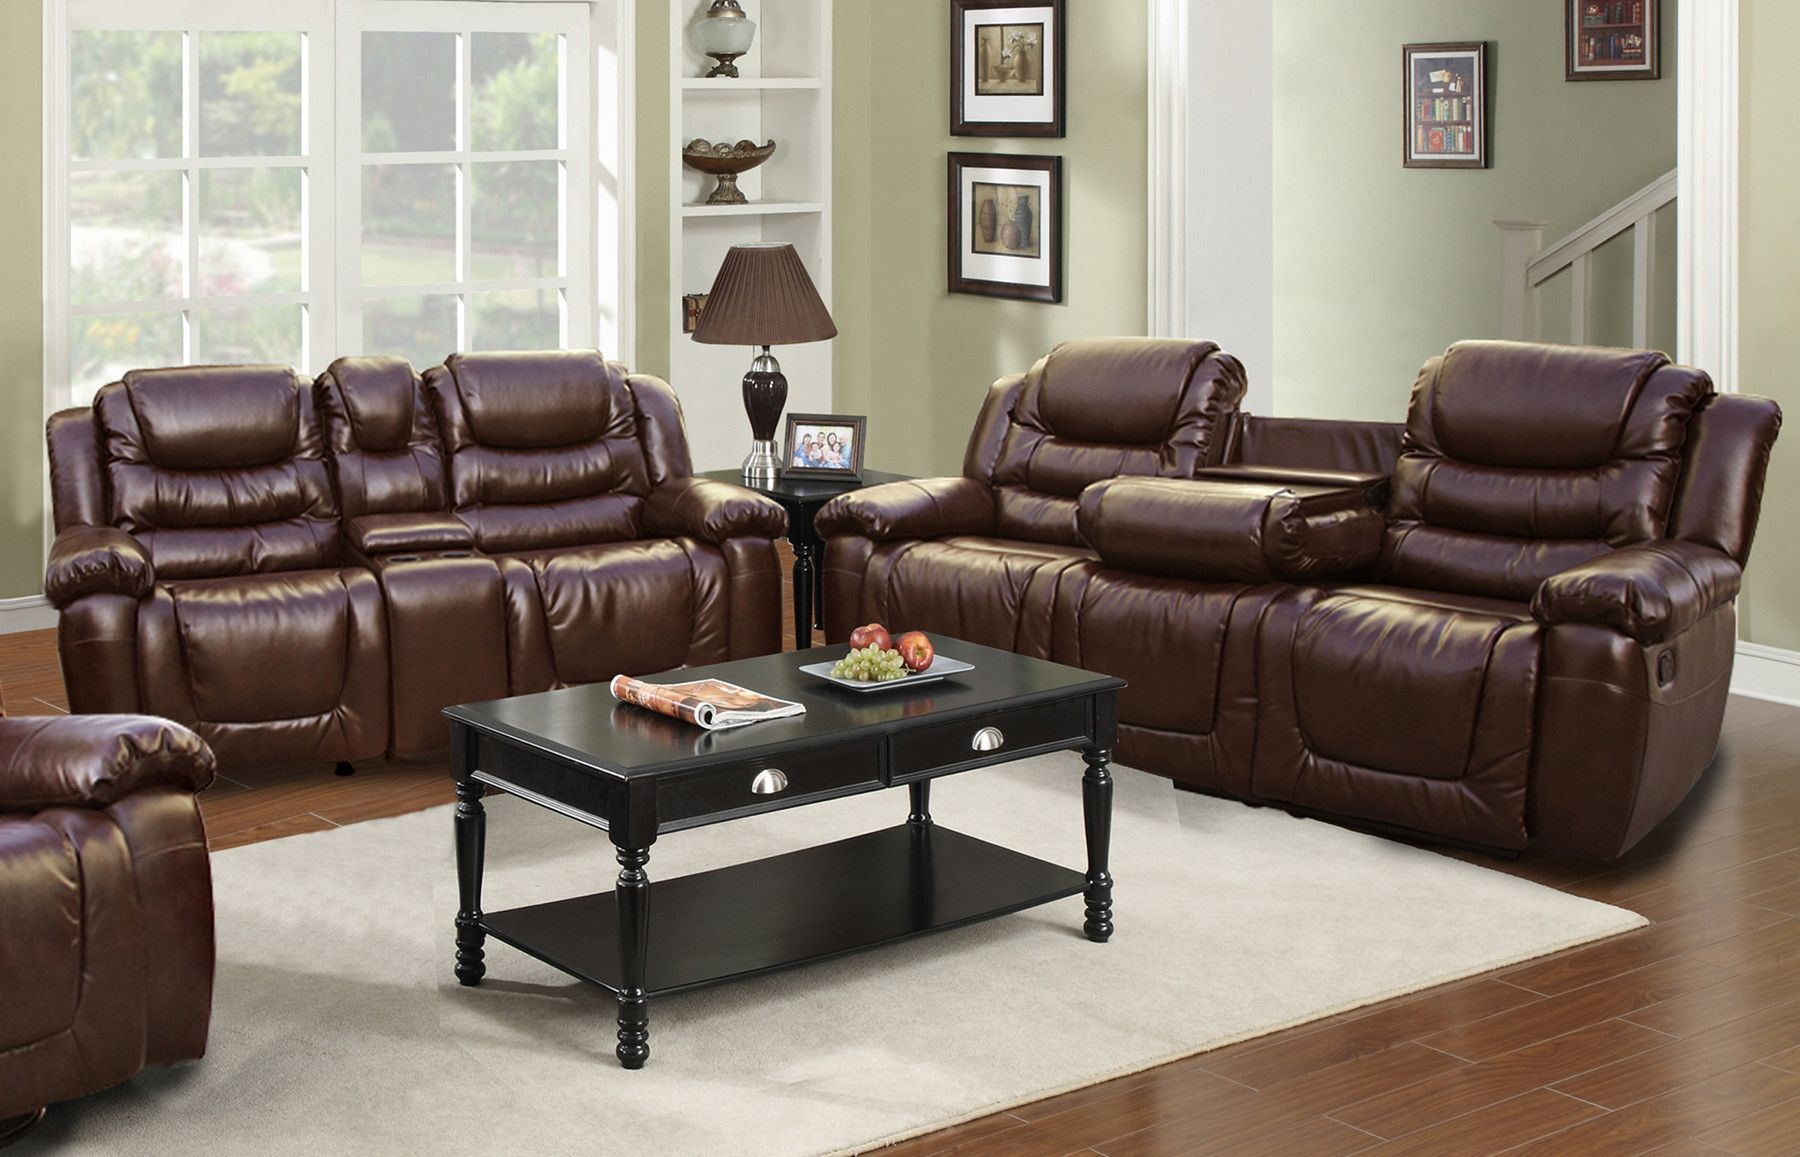 Ottawa 2 Piece Bonded Leather Reclining Living Room Sofa Set